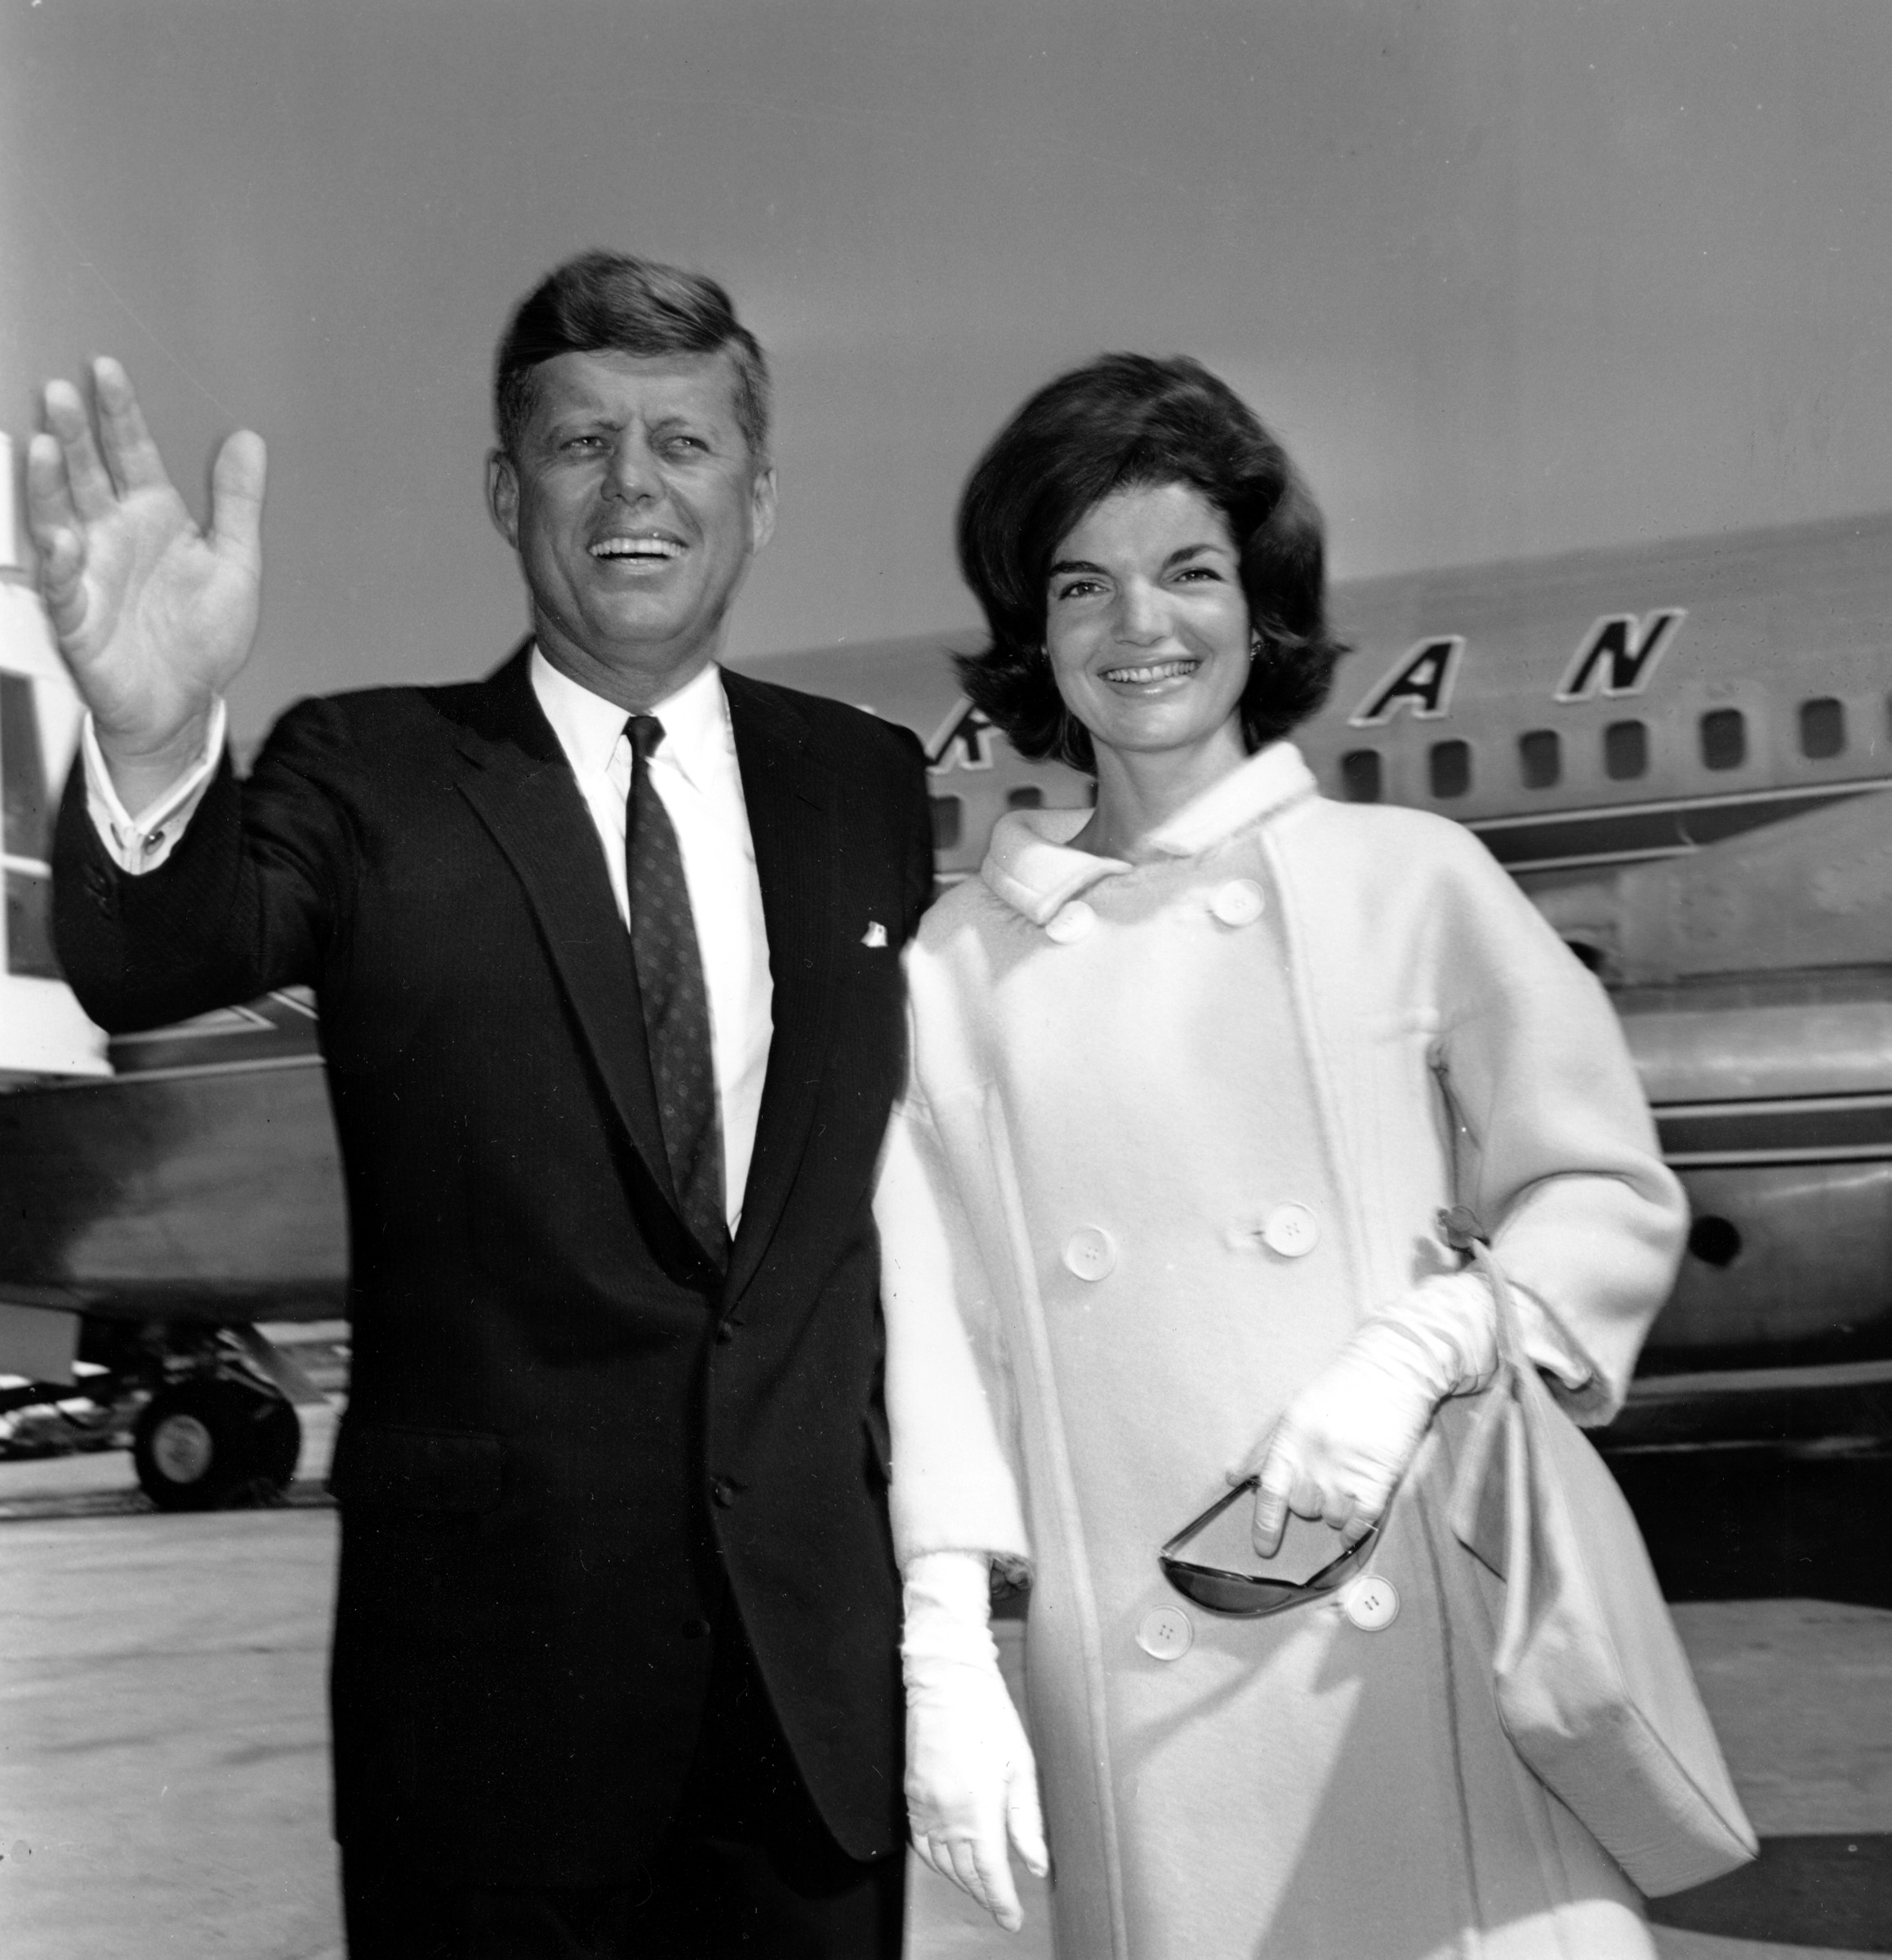 <div class='meta'><div class='origin-logo' data-origin='none'></div><span class='caption-text' data-credit='ASSOCIATED PRESS'>Sen. John F. Kennedy waves farewell as he poses with his wife, Jacqueline Kennedy, at New York's Idlewild Airport in New York City on July 9, 1960.</span></div>